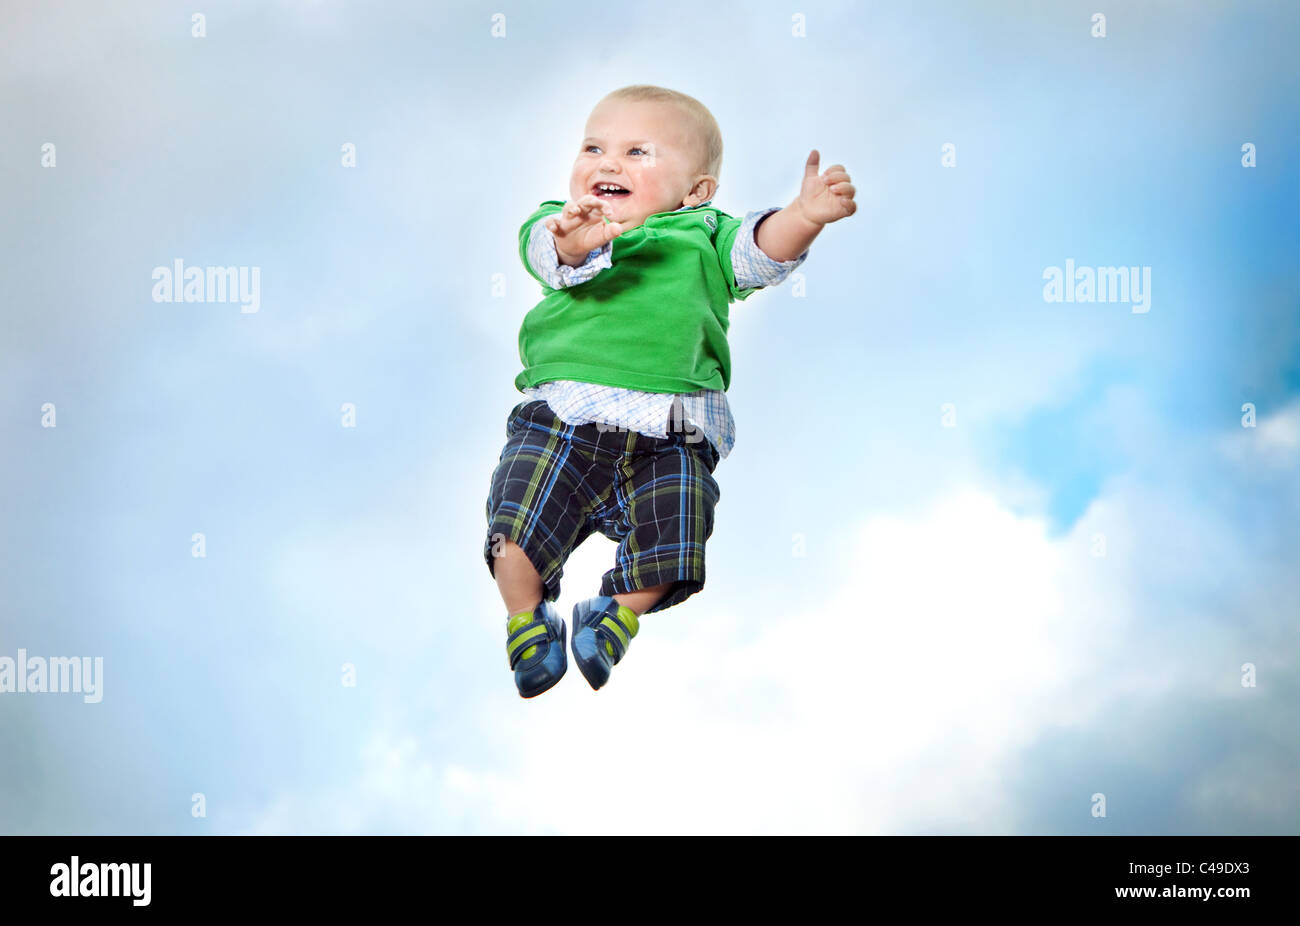 A baby boy in trendy clothing flying in mid-air against a blue sky. - Stock Image